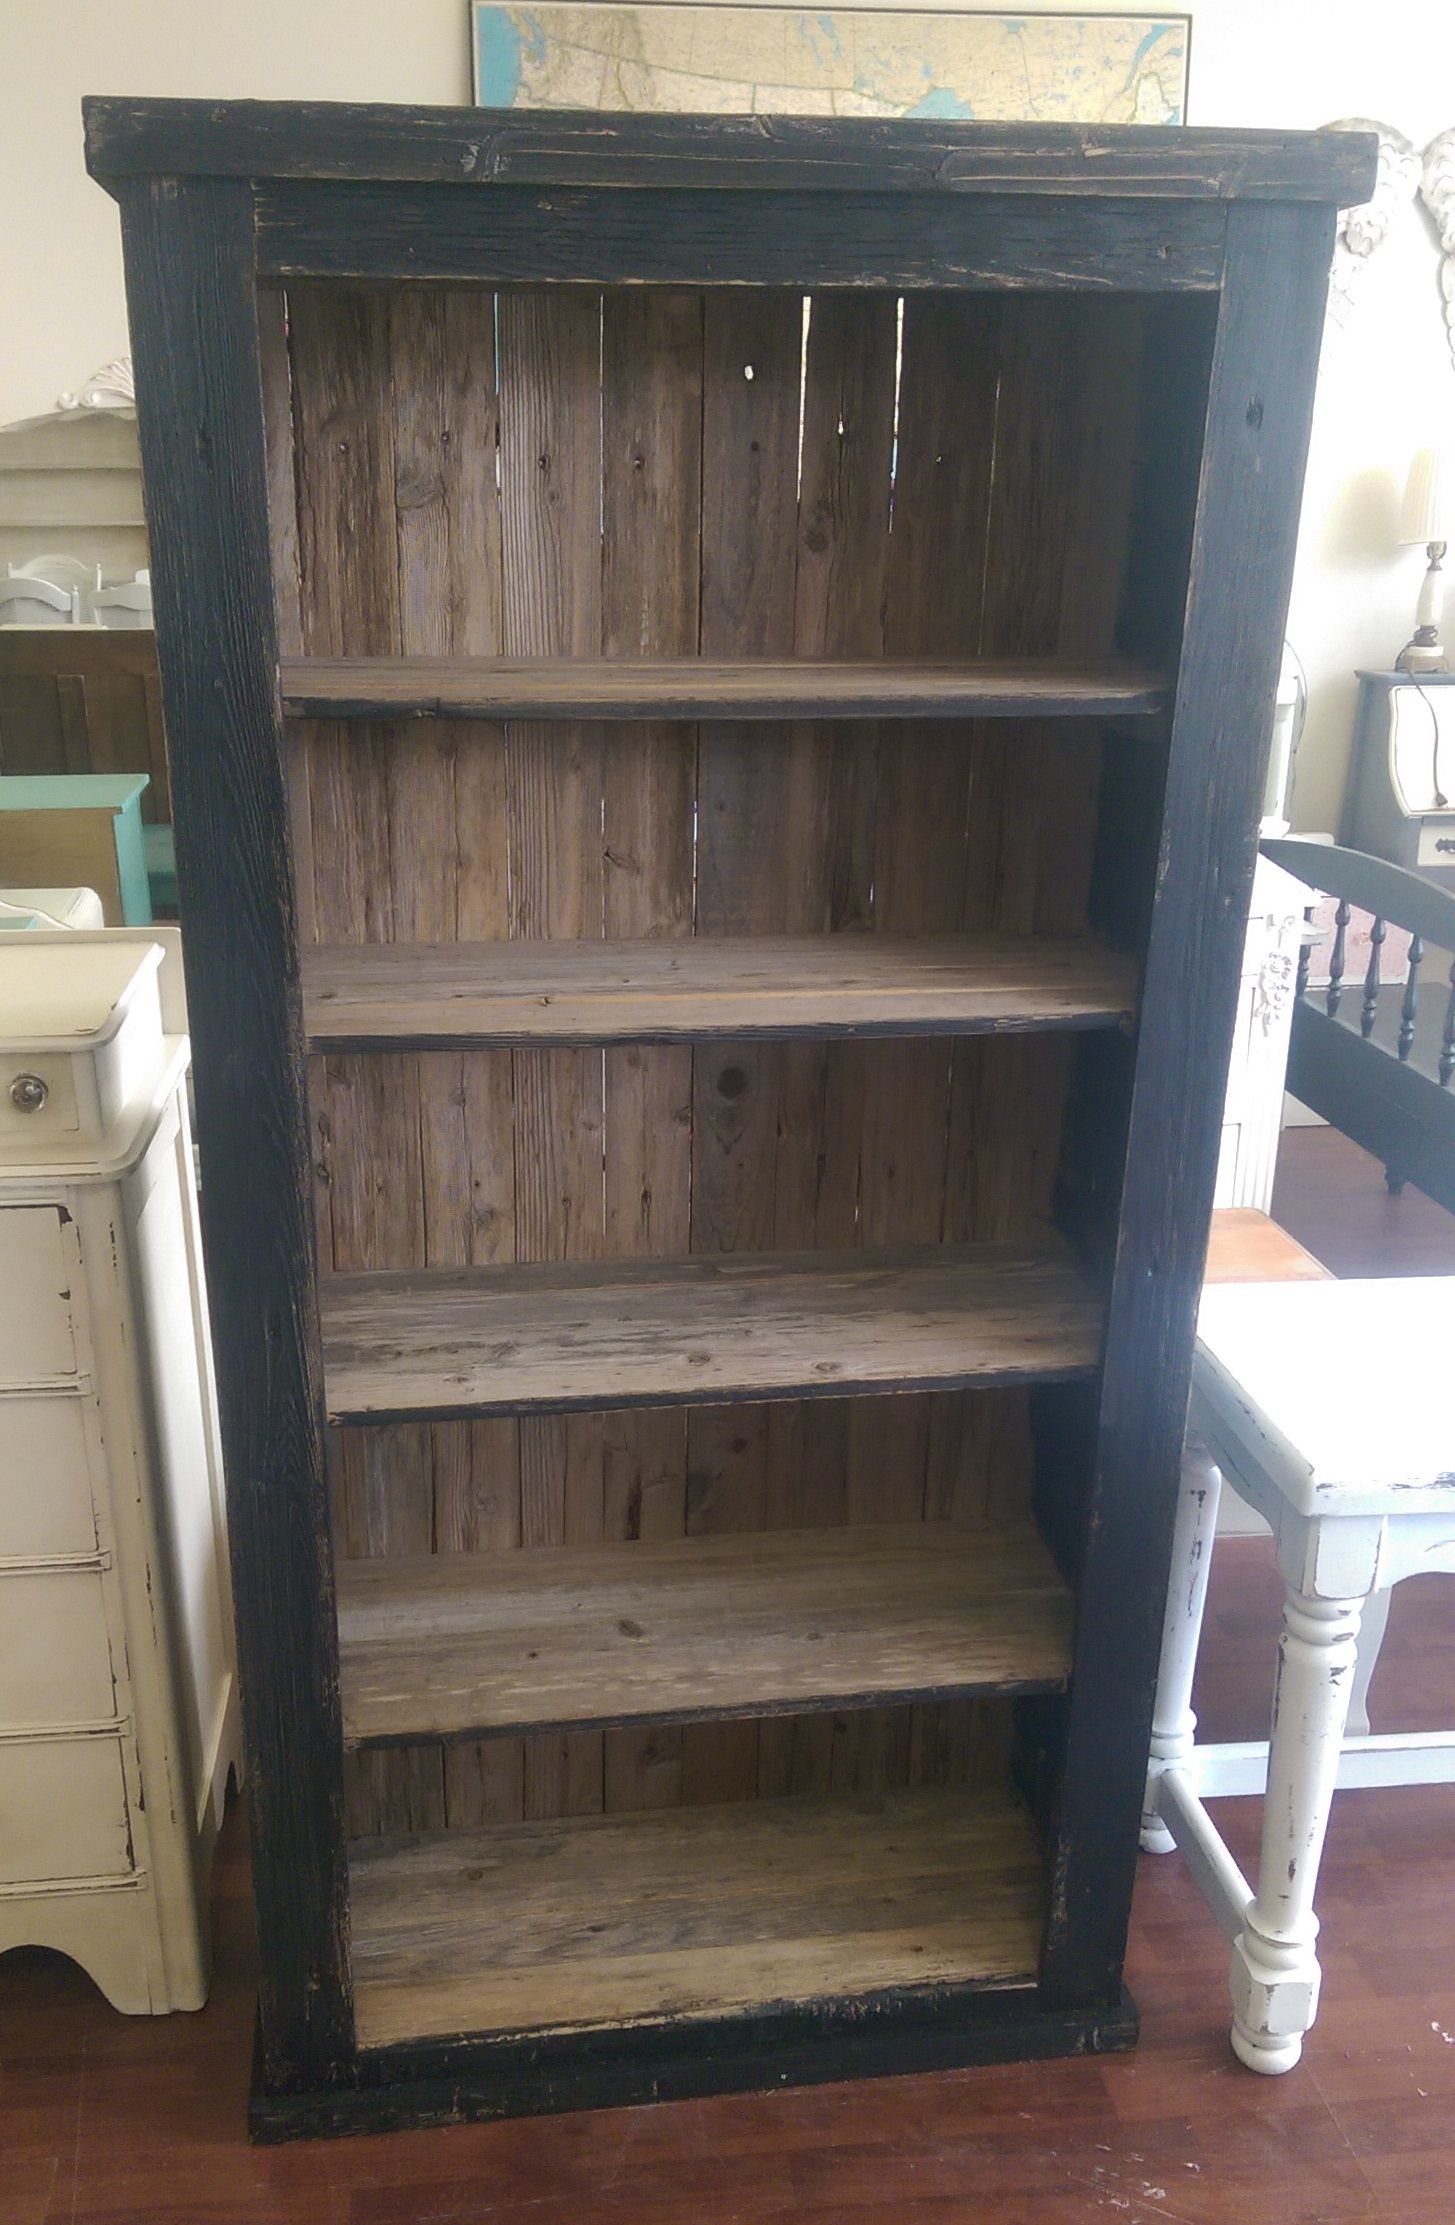 Here Is Tall Reclaimed Wood Bookshelf I Brushed The Outside Of It With Black To Give It Some Color Wh Bookshelves Diy Wood Bookshelves Diy Furniture Projects